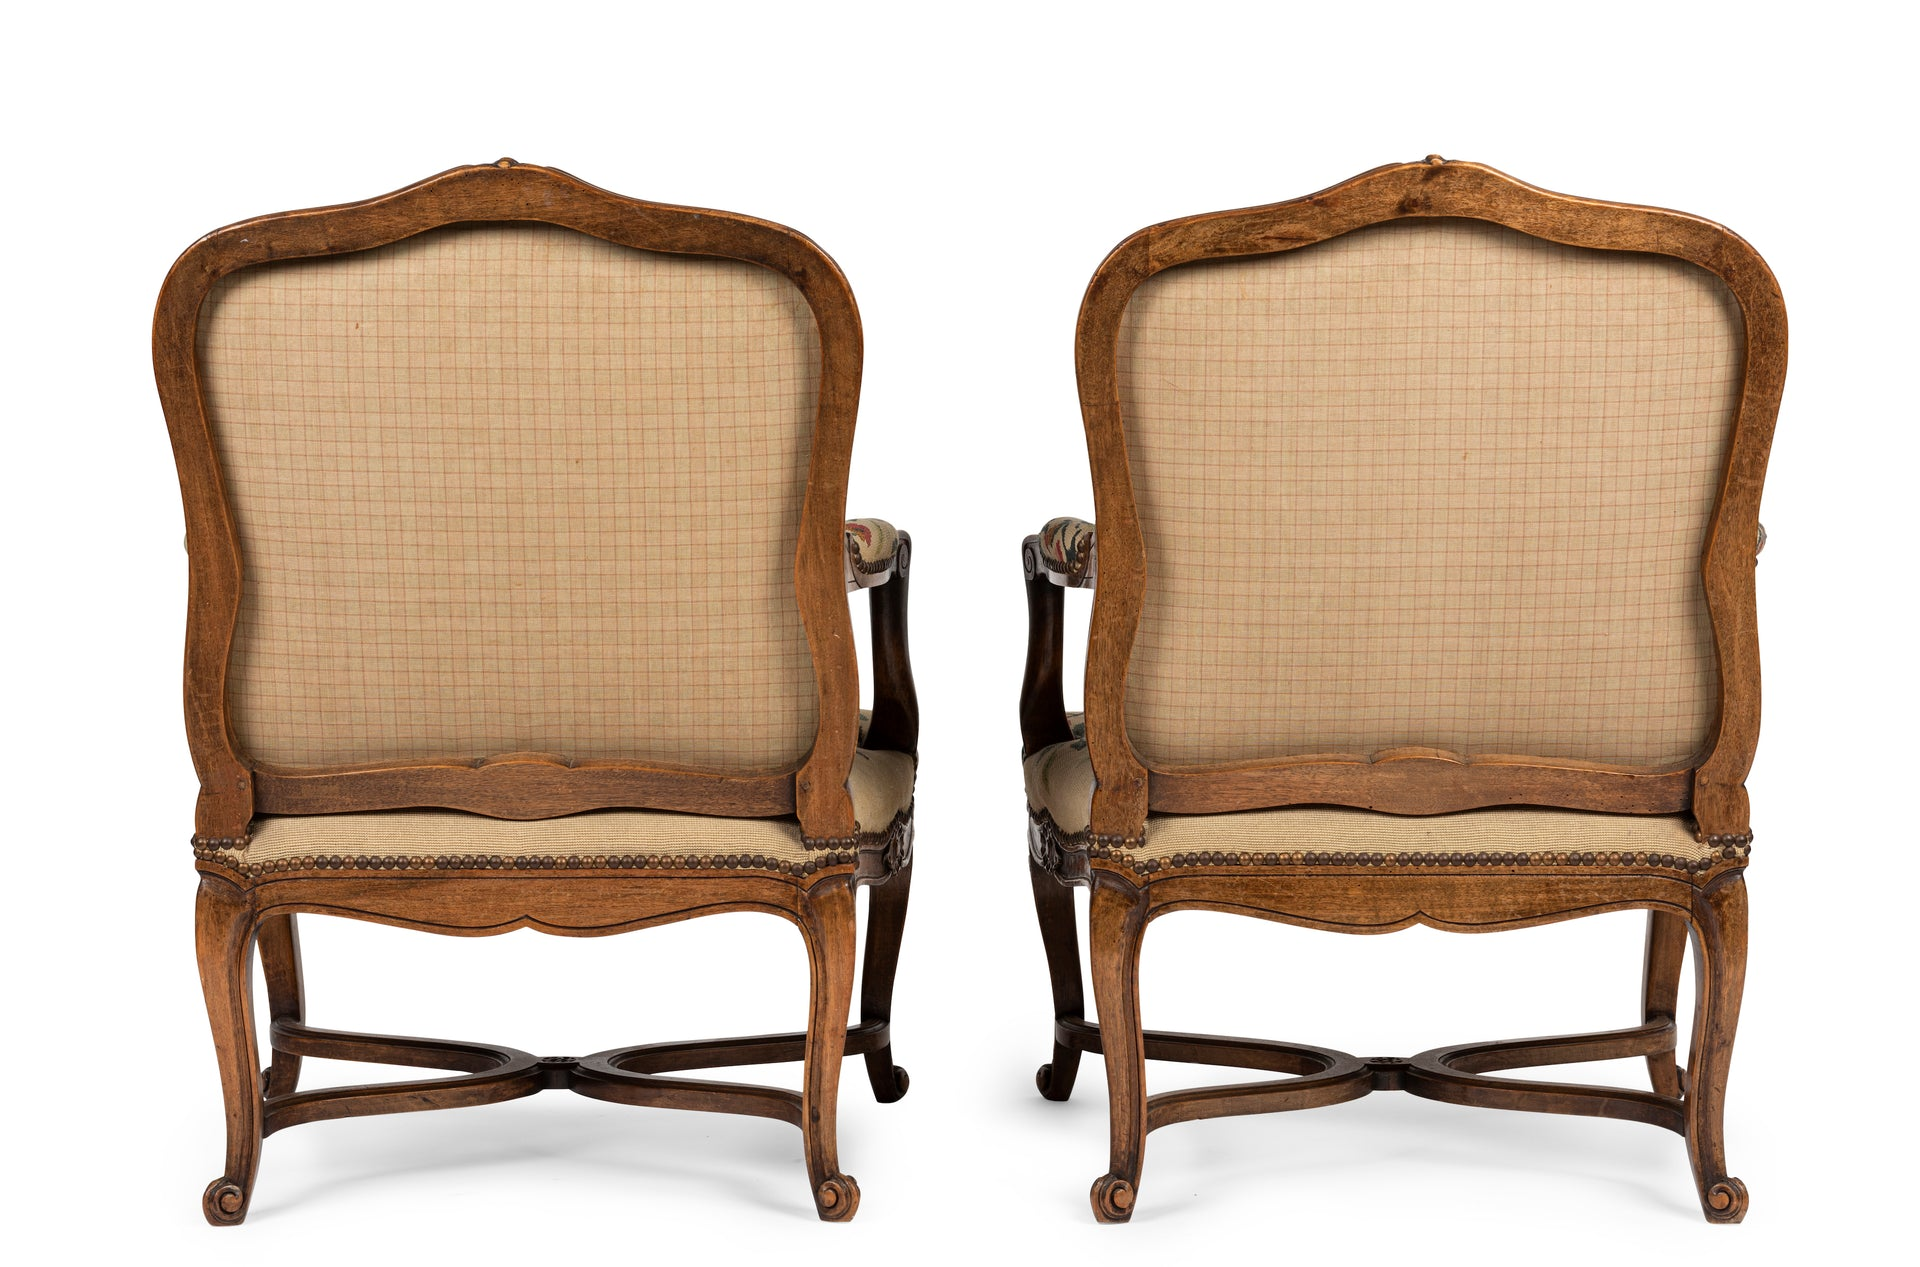 A beautiful pair of Louis XVI style fauteuils with original needlework upholstery, French 19th Century